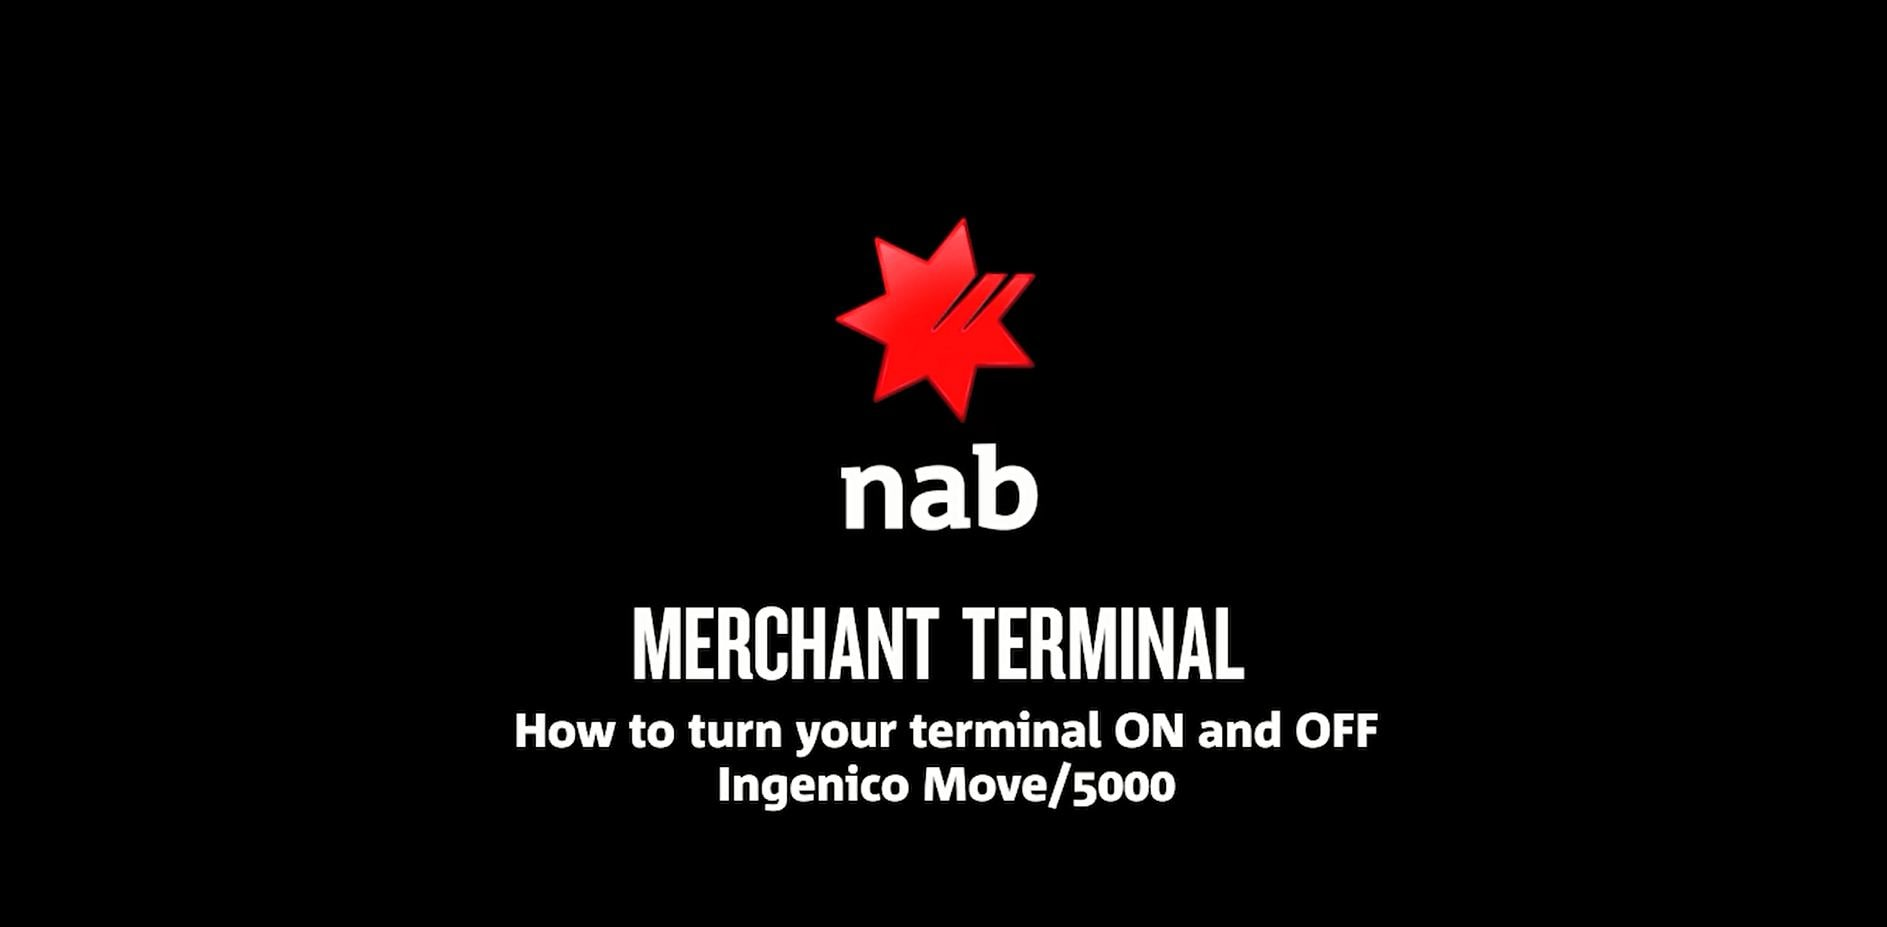 Ingenico troubleshooting guide - NAB